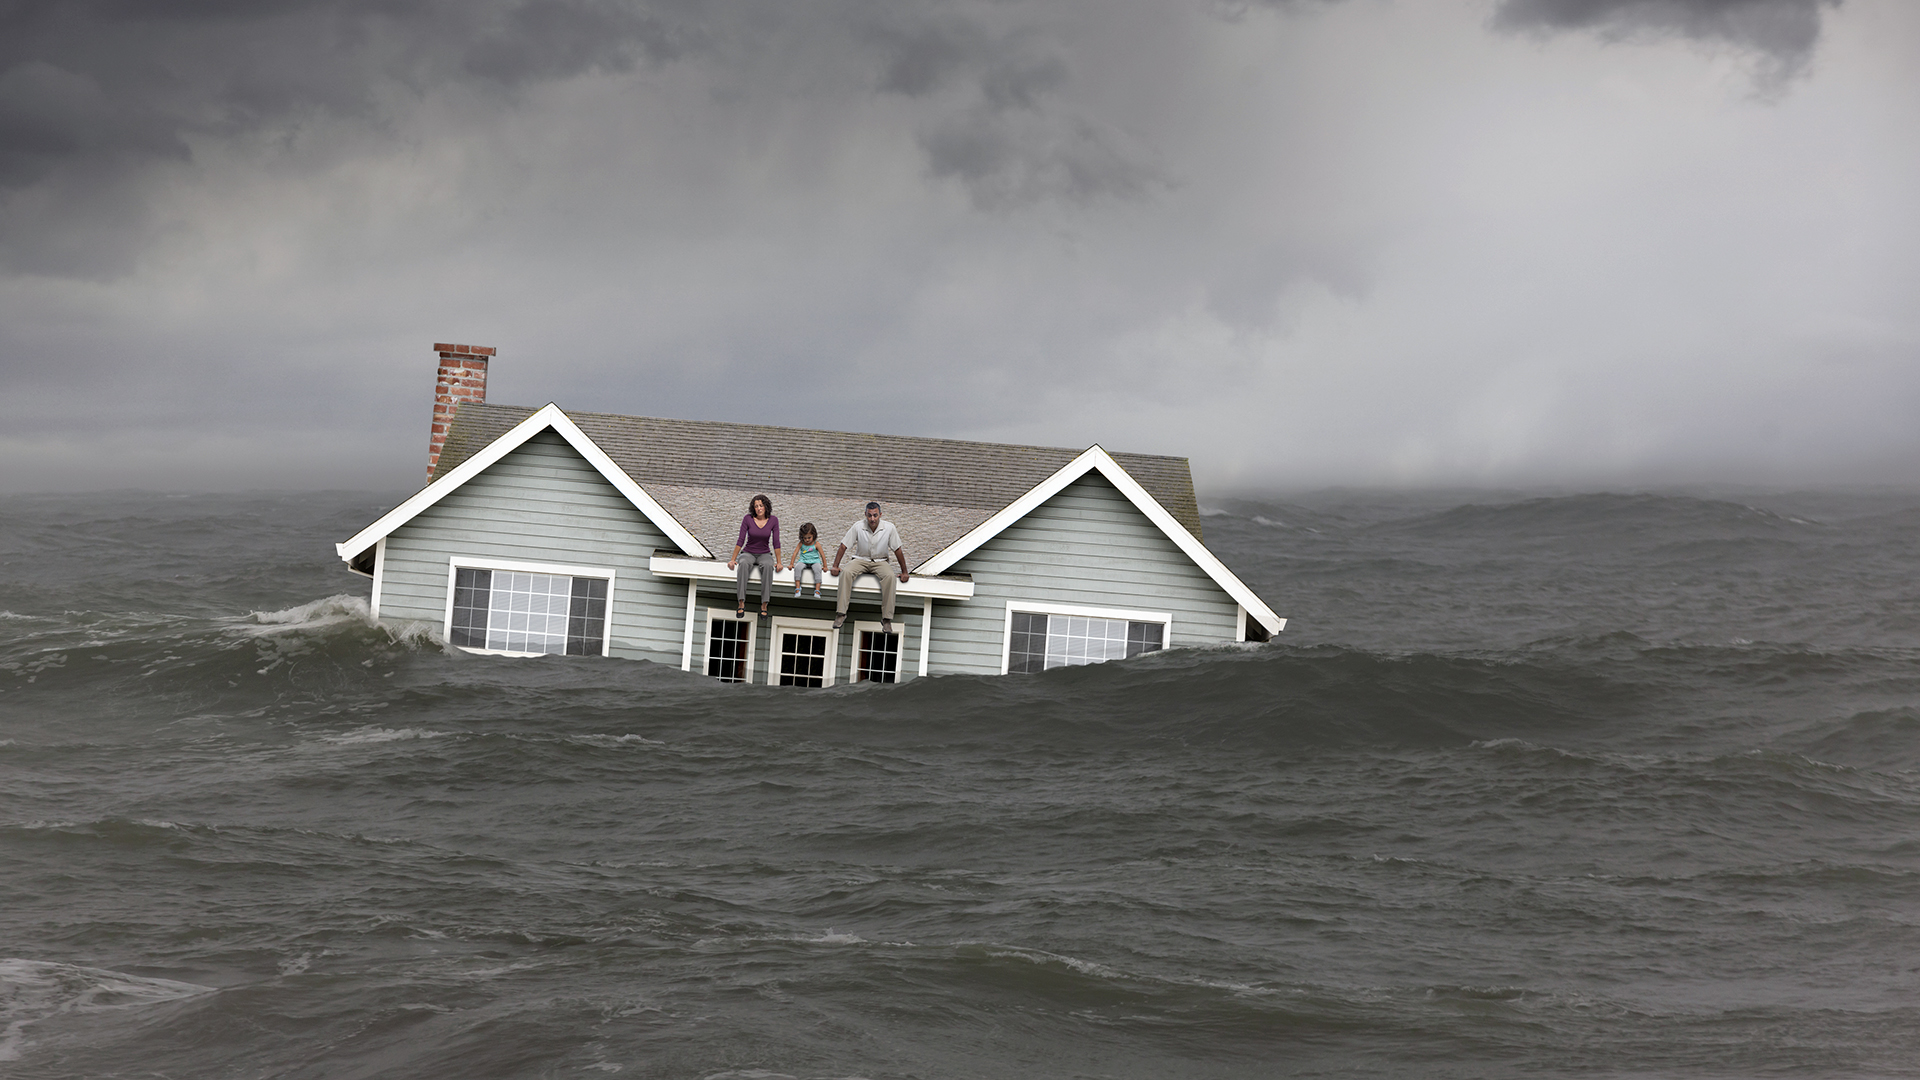 Family sitting on roof of house floating in sea